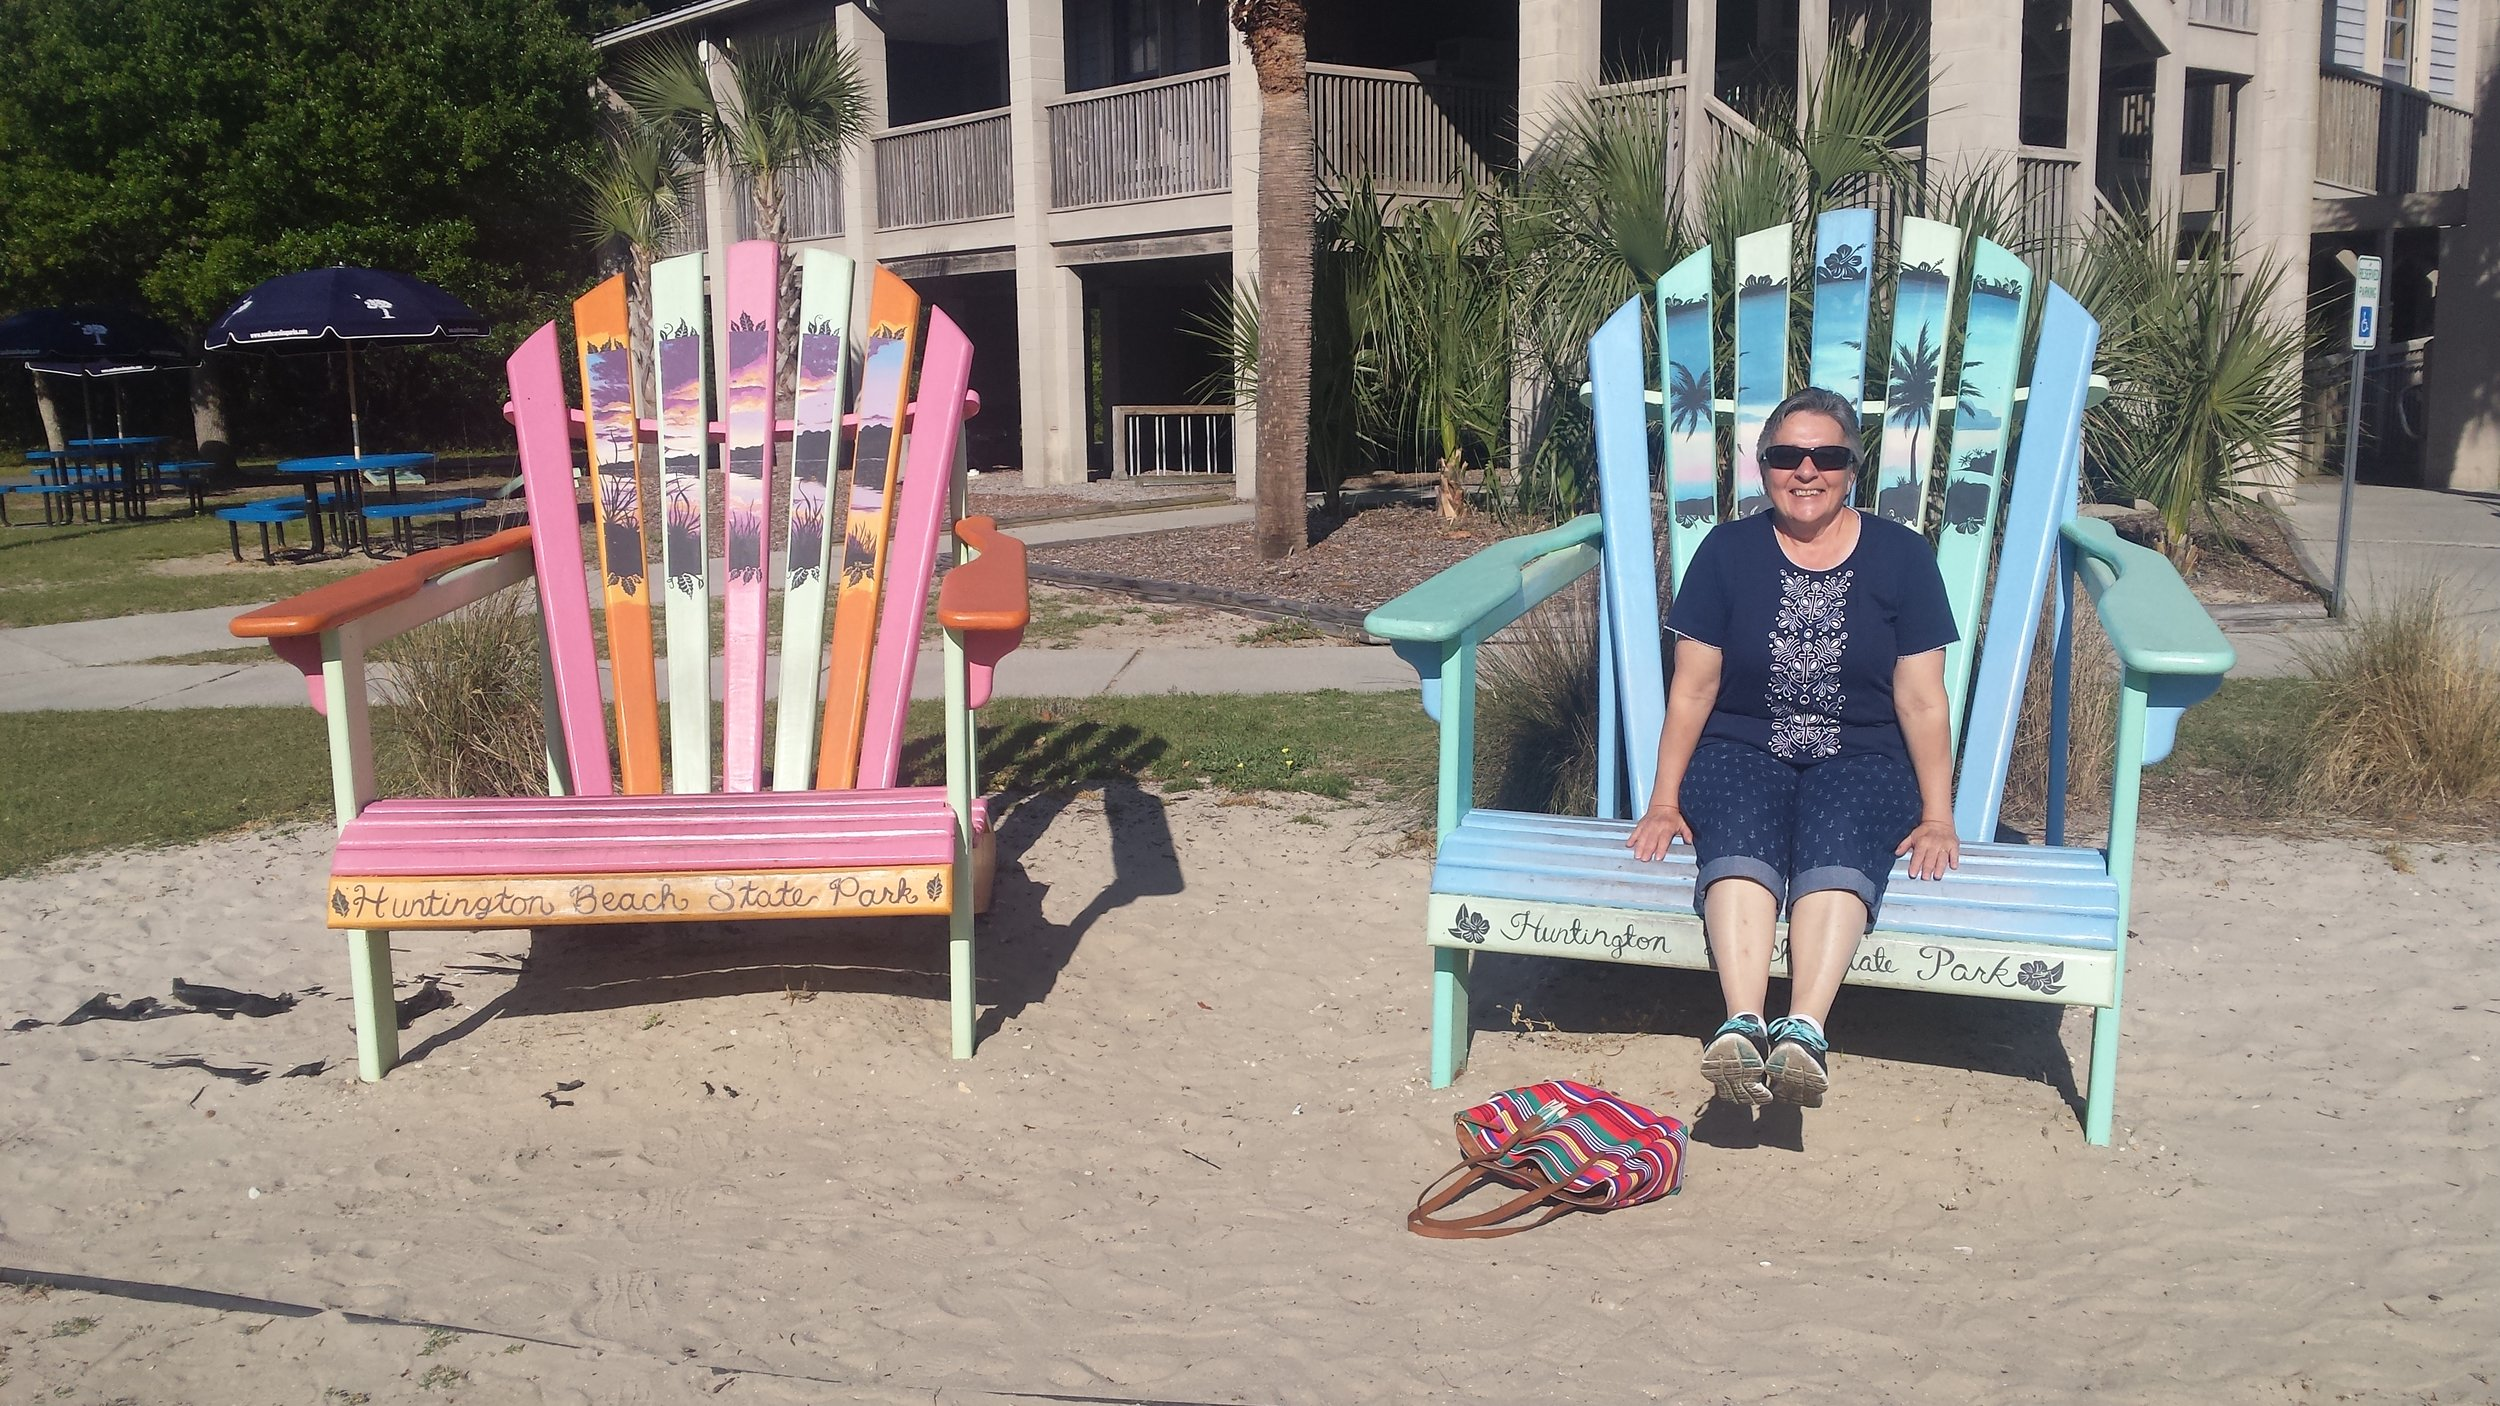 Beach Nana chilling in the giant adirondack chairs at Huntington Island State Park.